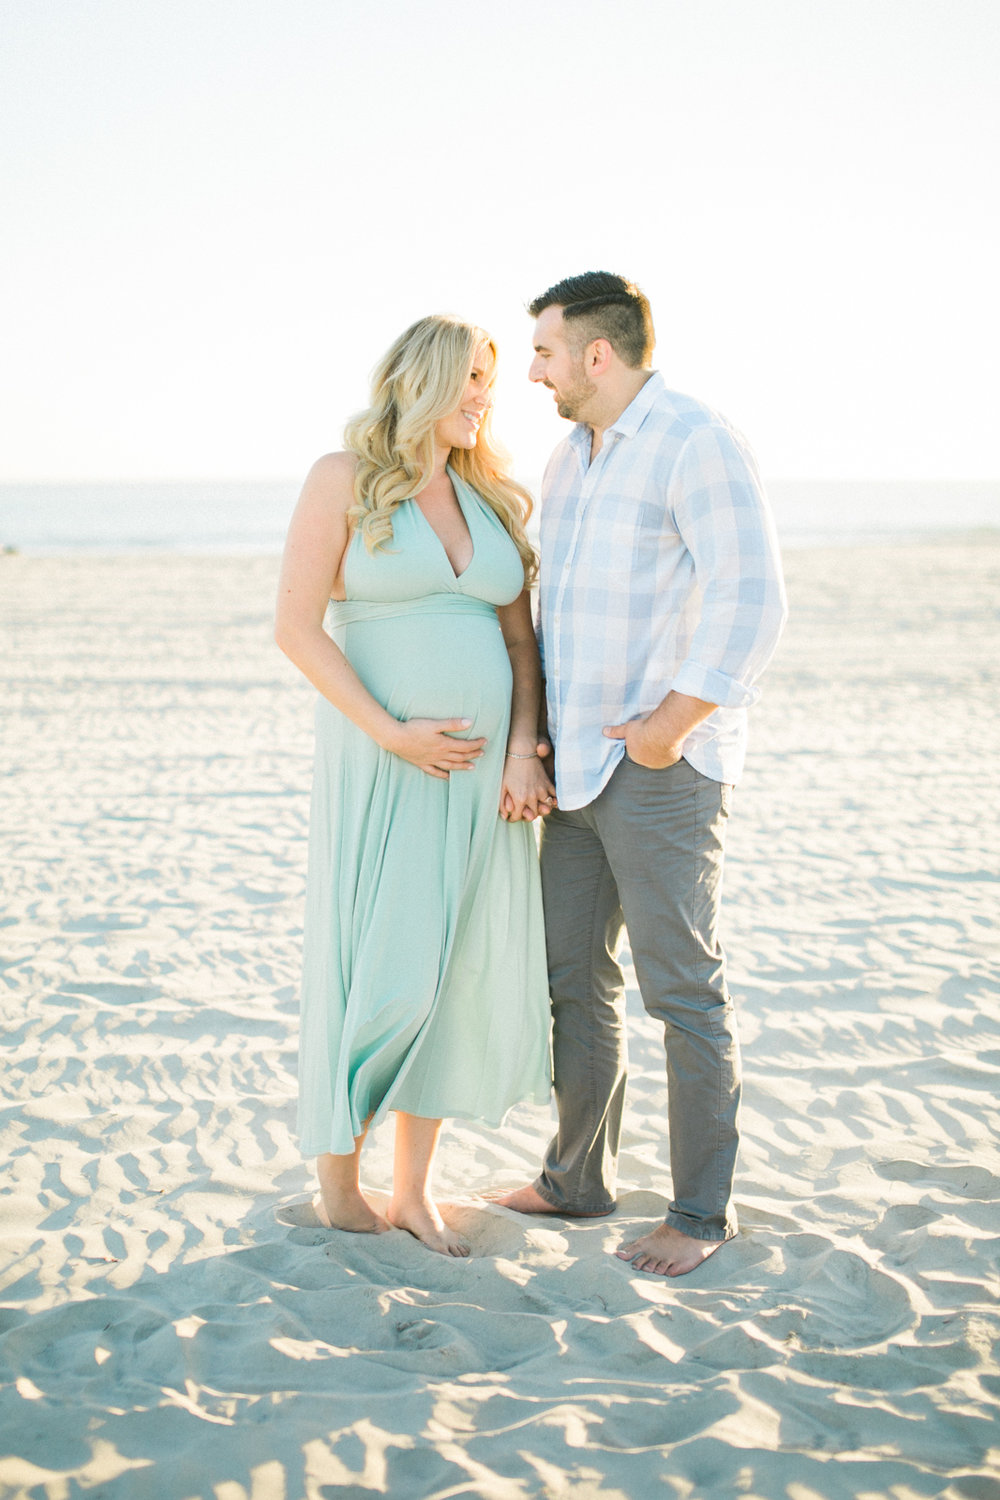 coronado-maternity-photos-7.jpg